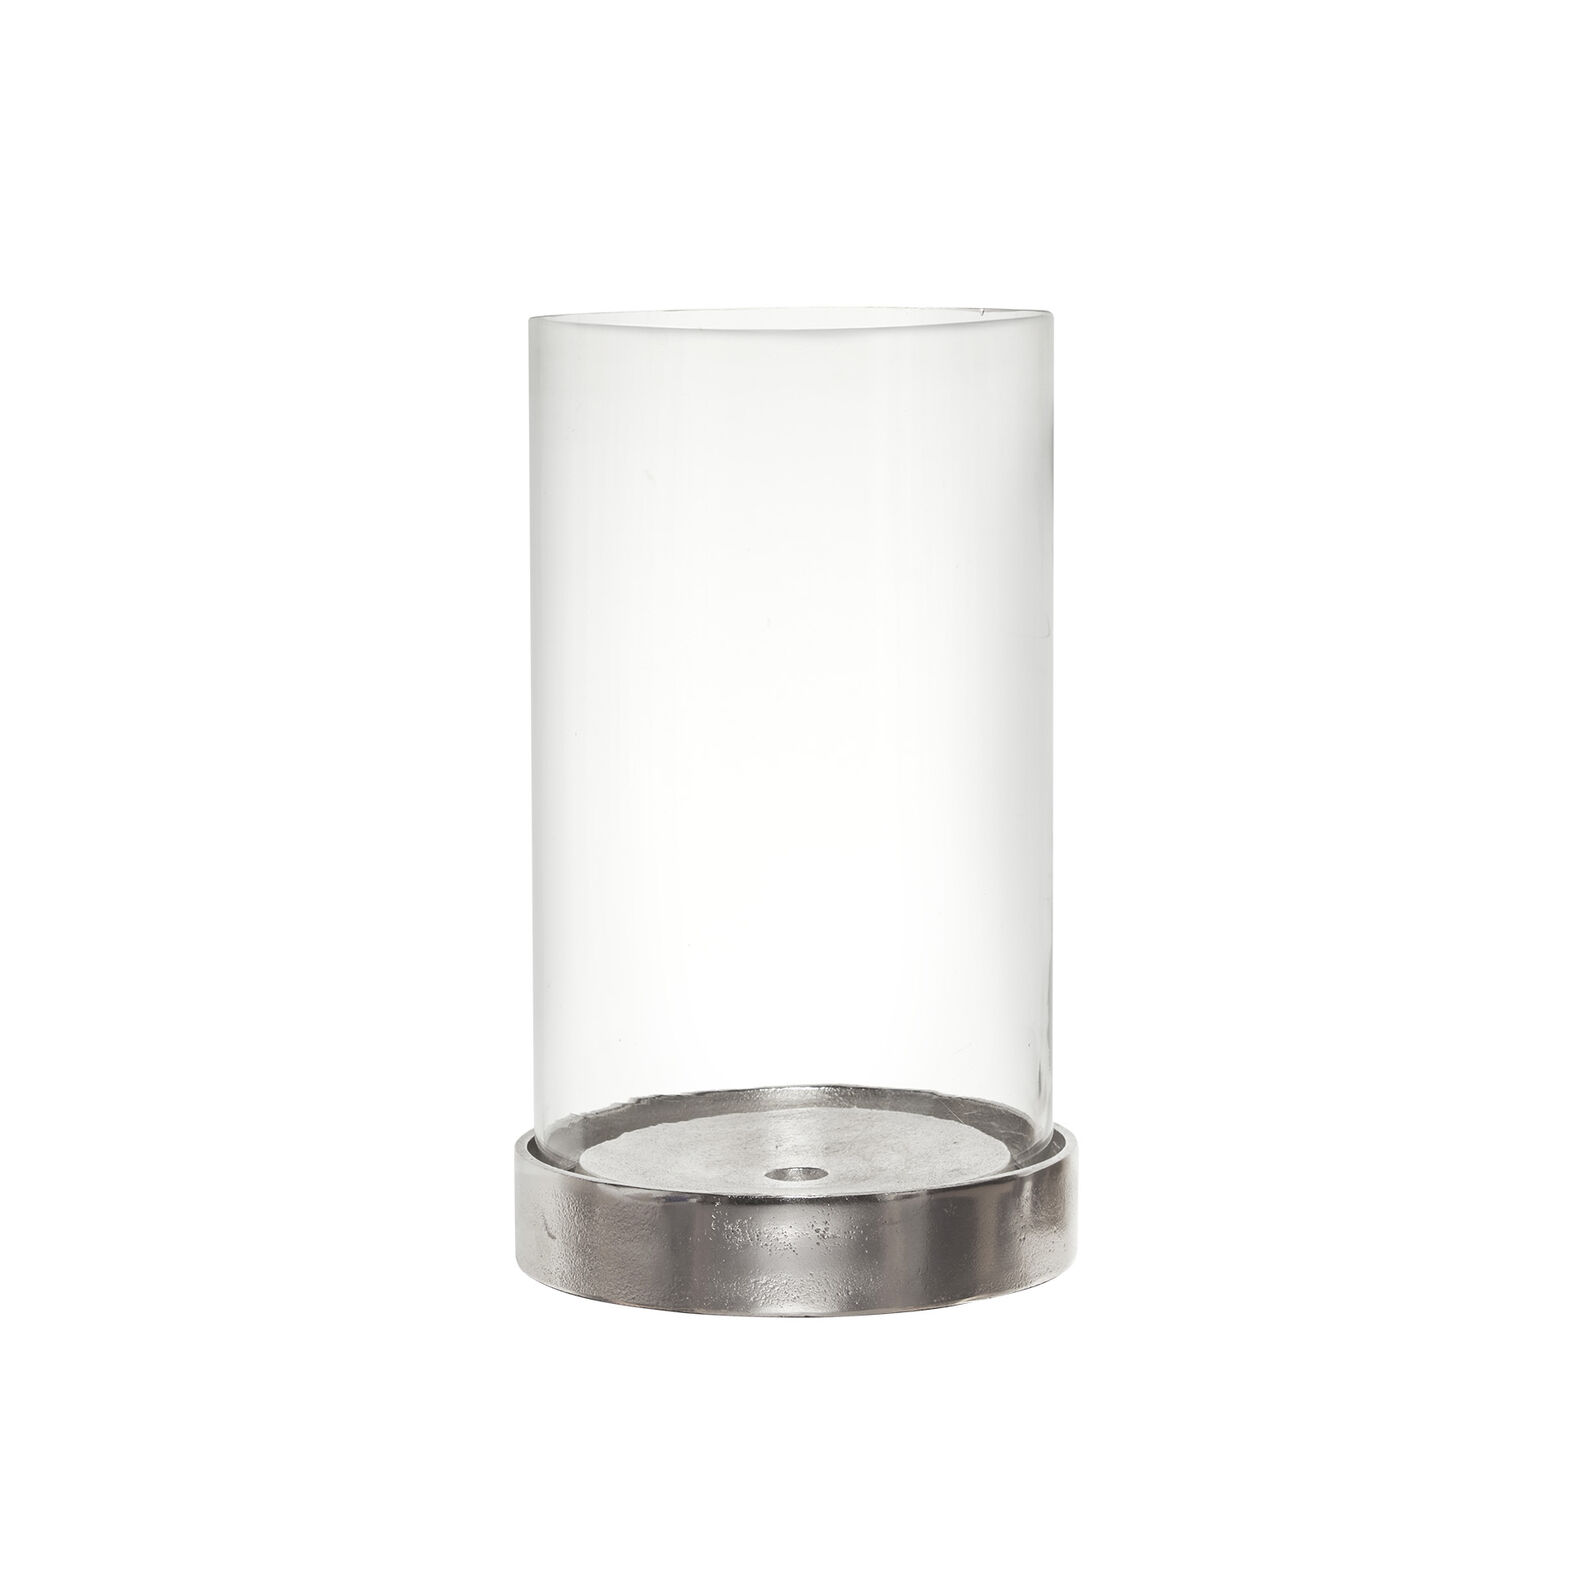 Windproof candle holder in glass and aluminium